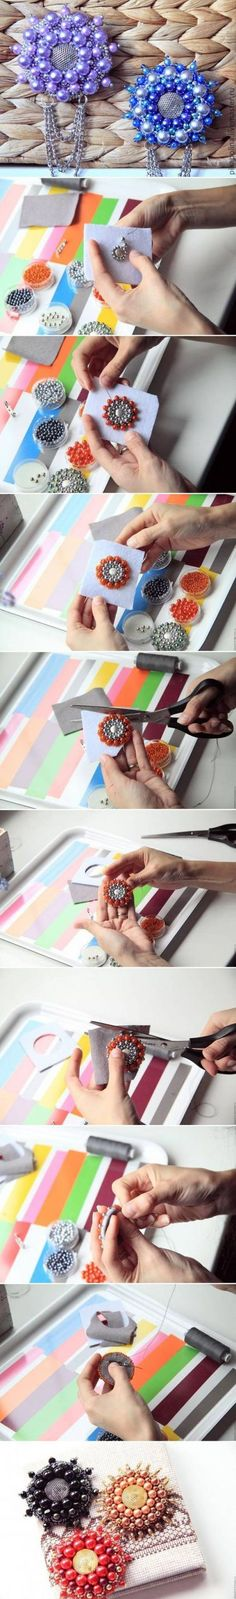 DIY Beads Flower Brooch | beads